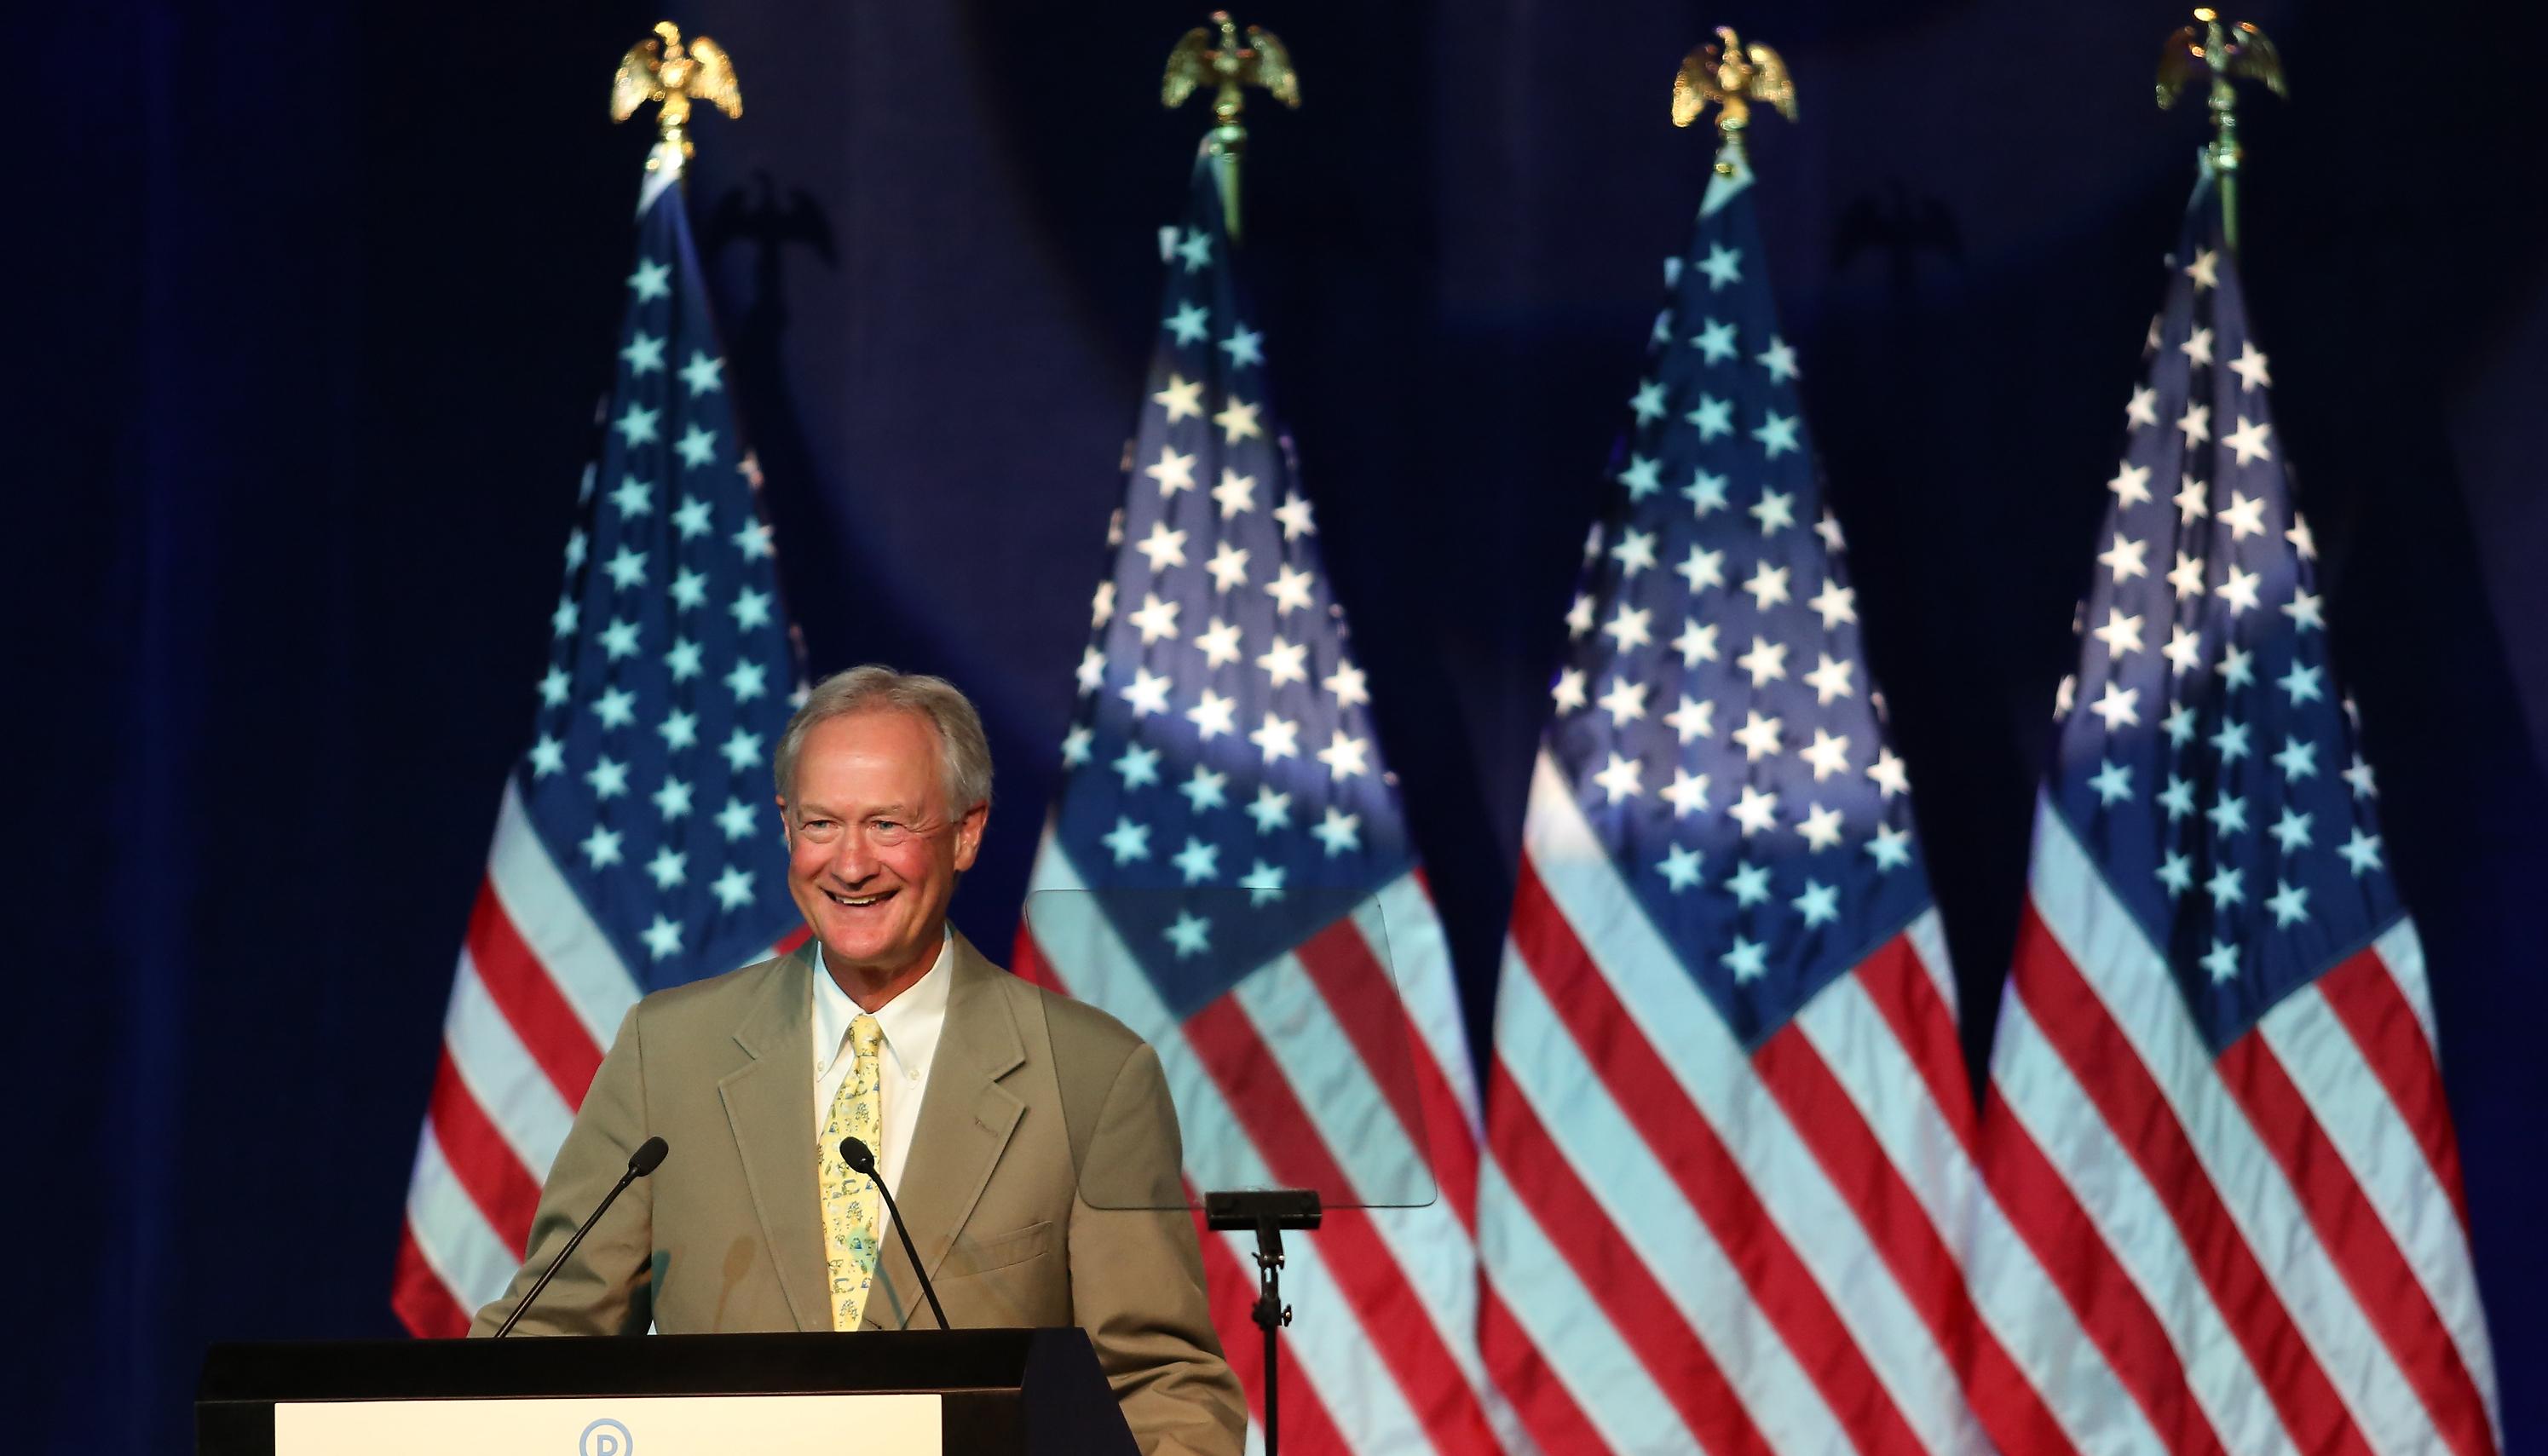 Lincoln Chafee speaks at the Democratic National Committee summer meeting on Aug. 28, 2015 in Minneapolis, Minnesota.